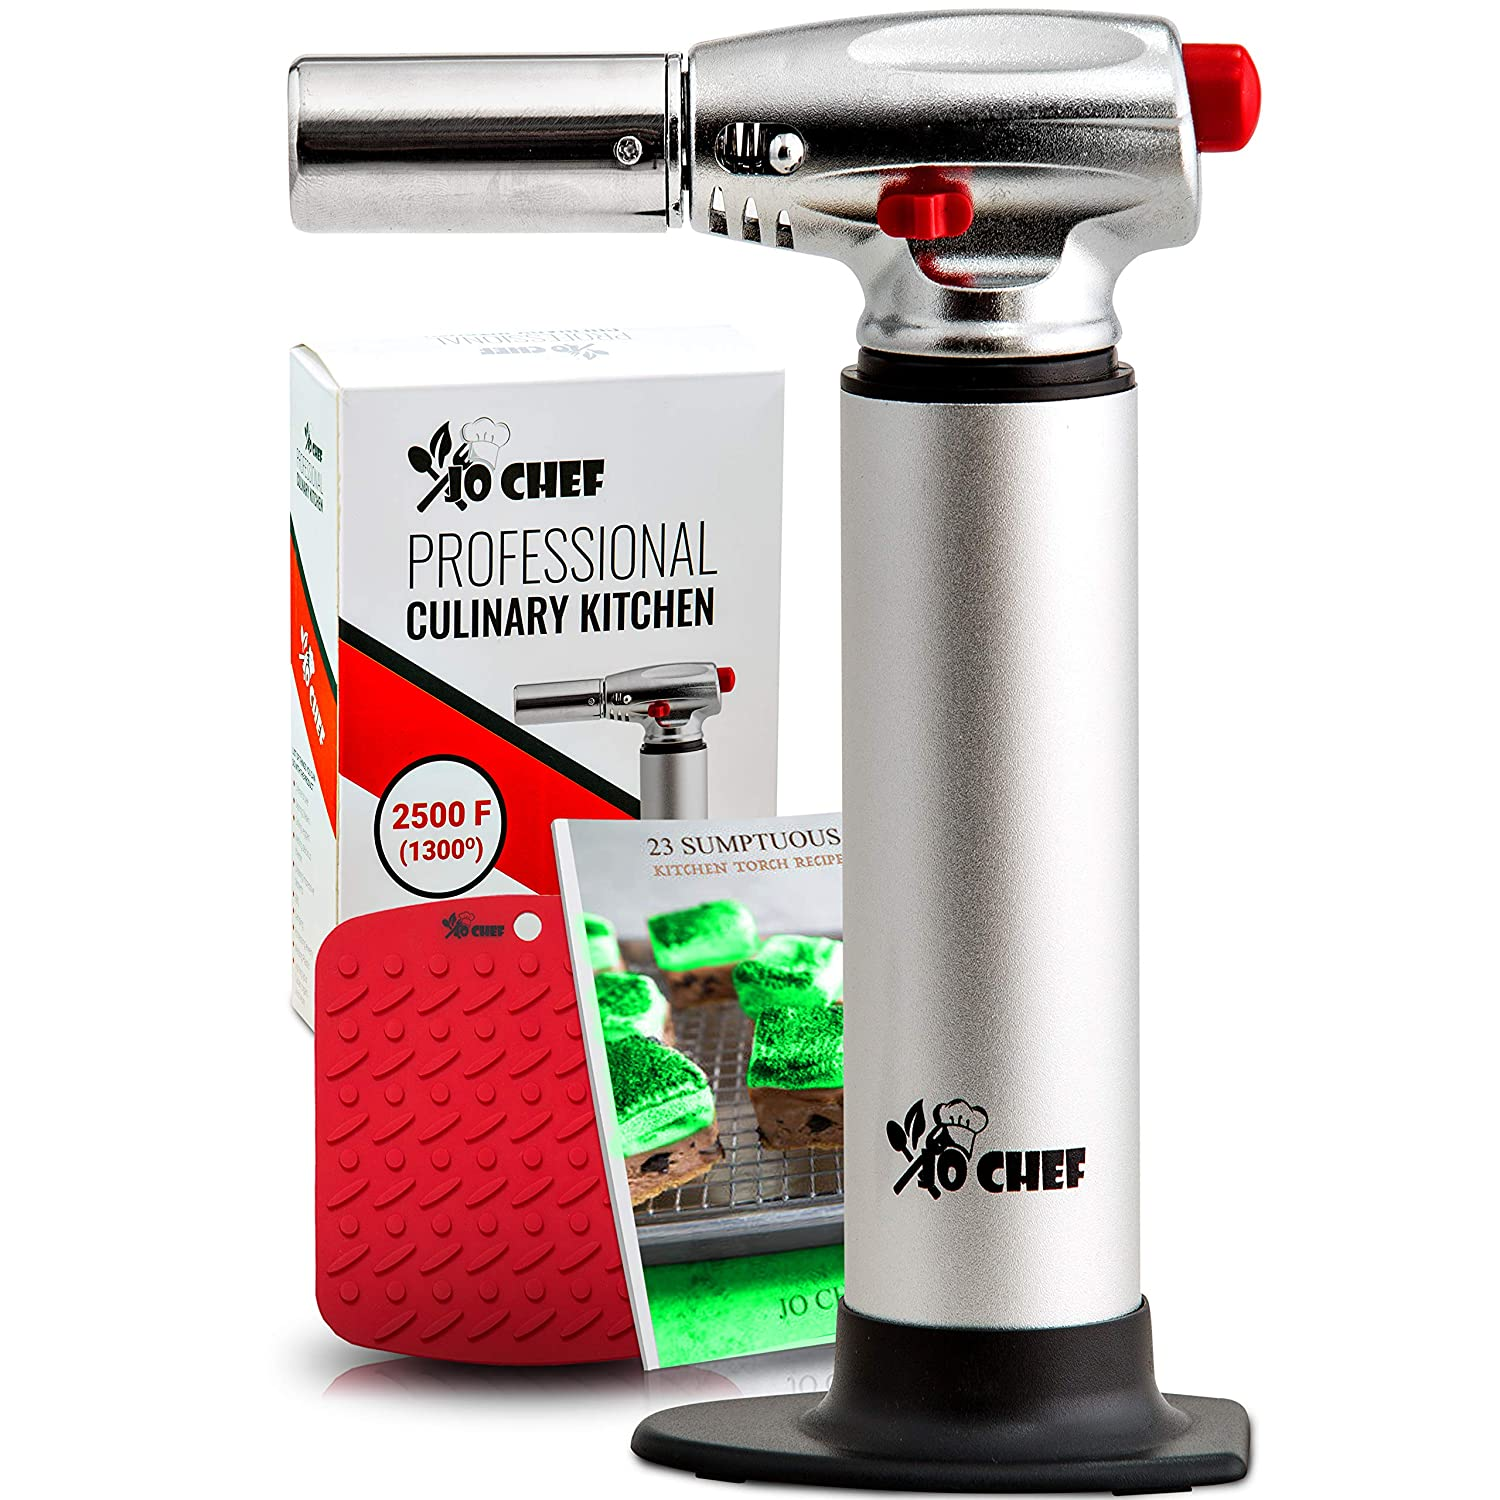 Jo Chef Professional Culinary Torch - Aluminum Refillable Crème Brulee Blow Torch - Butane Torch With Adjustable Flame - Perfect for Cooking, Baking, Crafts, BBQs - FREE Place Mat + Recipe eBook .